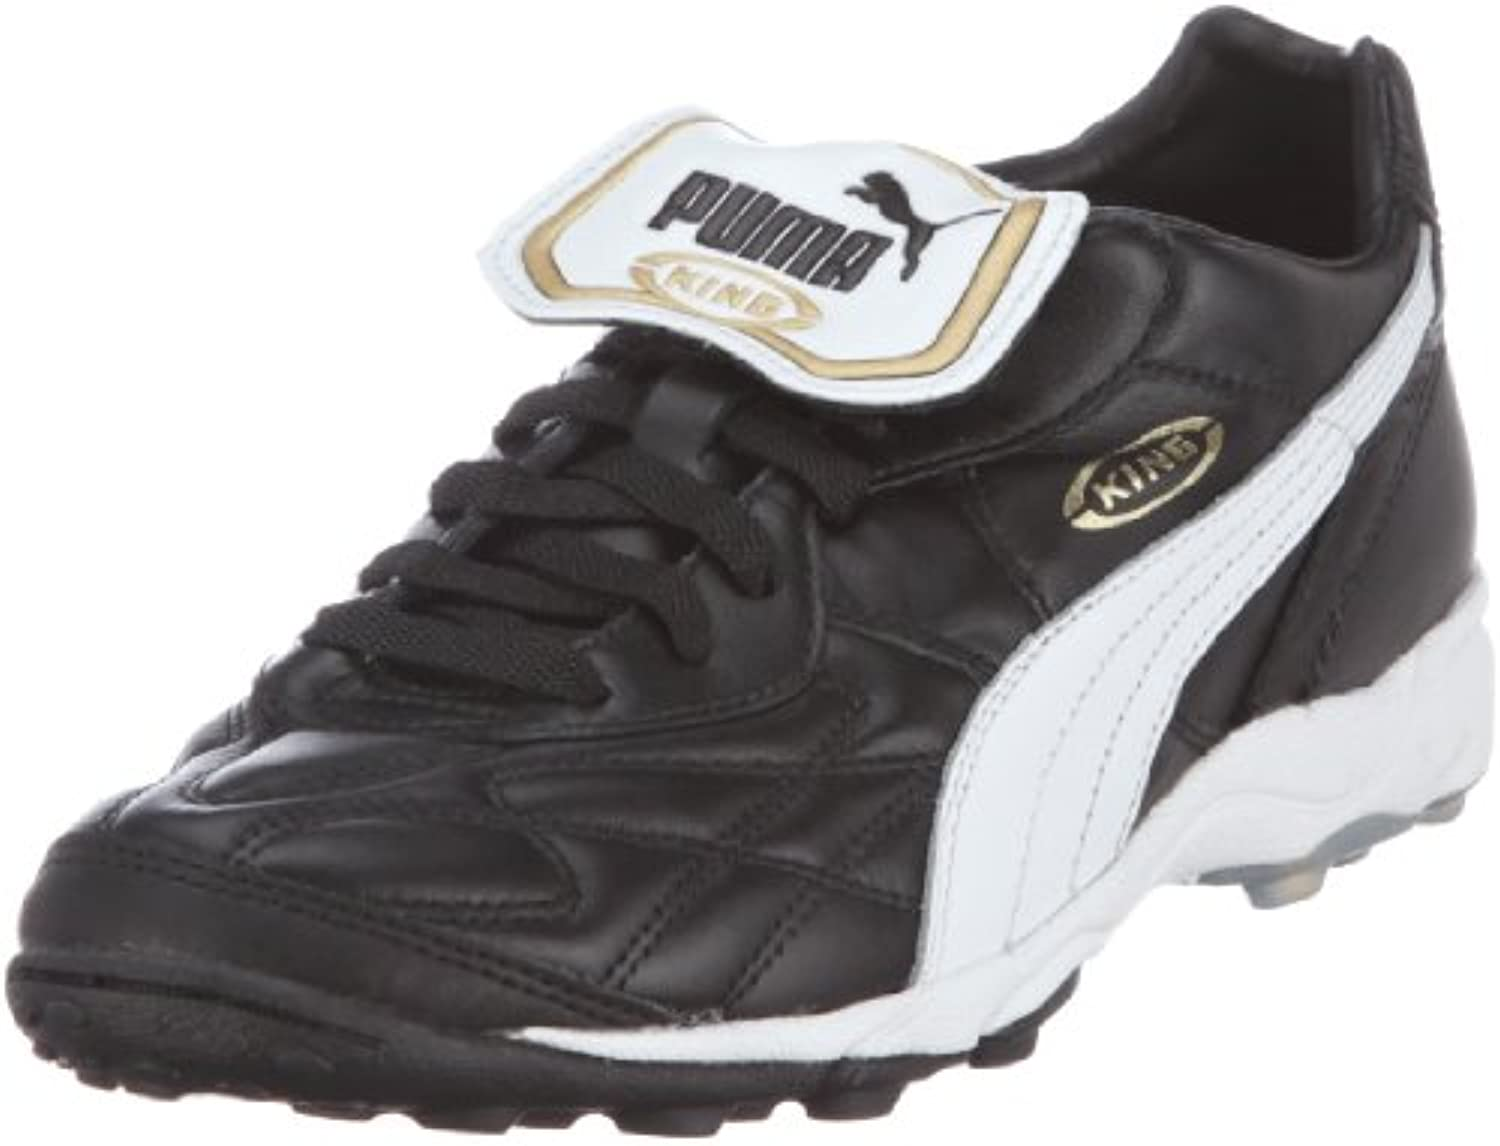 Puma King Allround TT   black white team gold  Größe:6